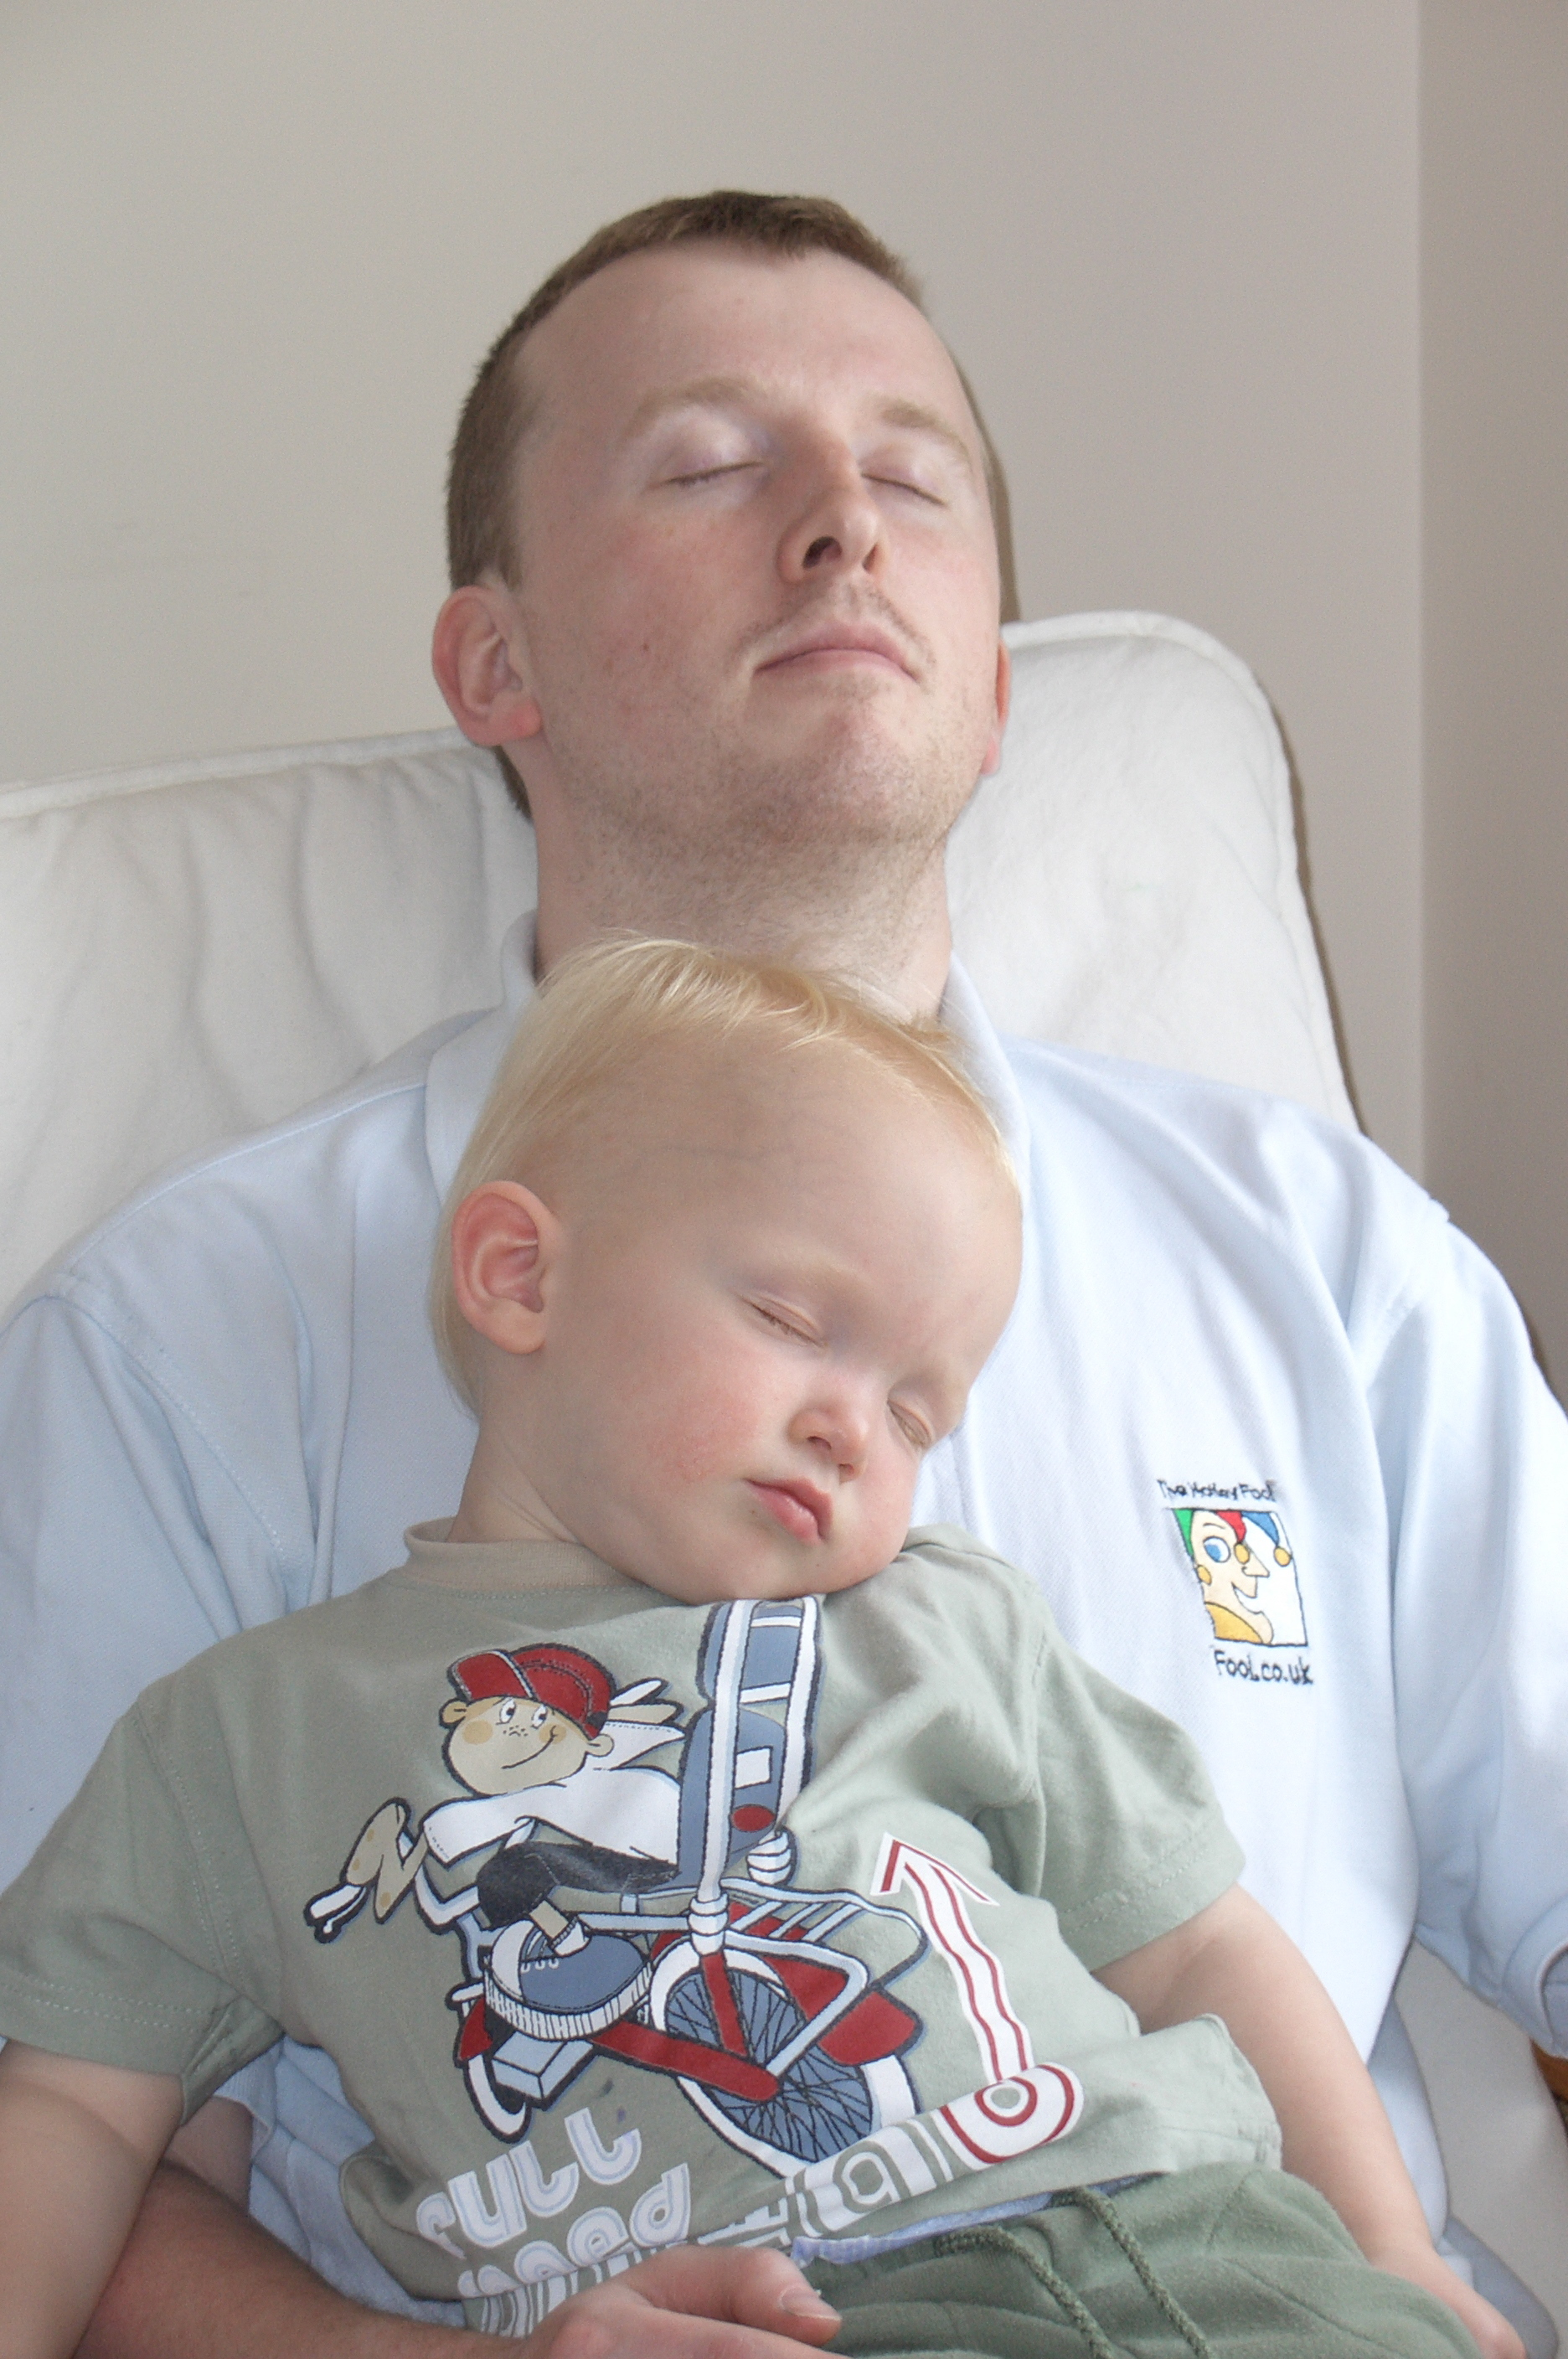 maynard paton fire retire early weekends spent asleep with two-year-old